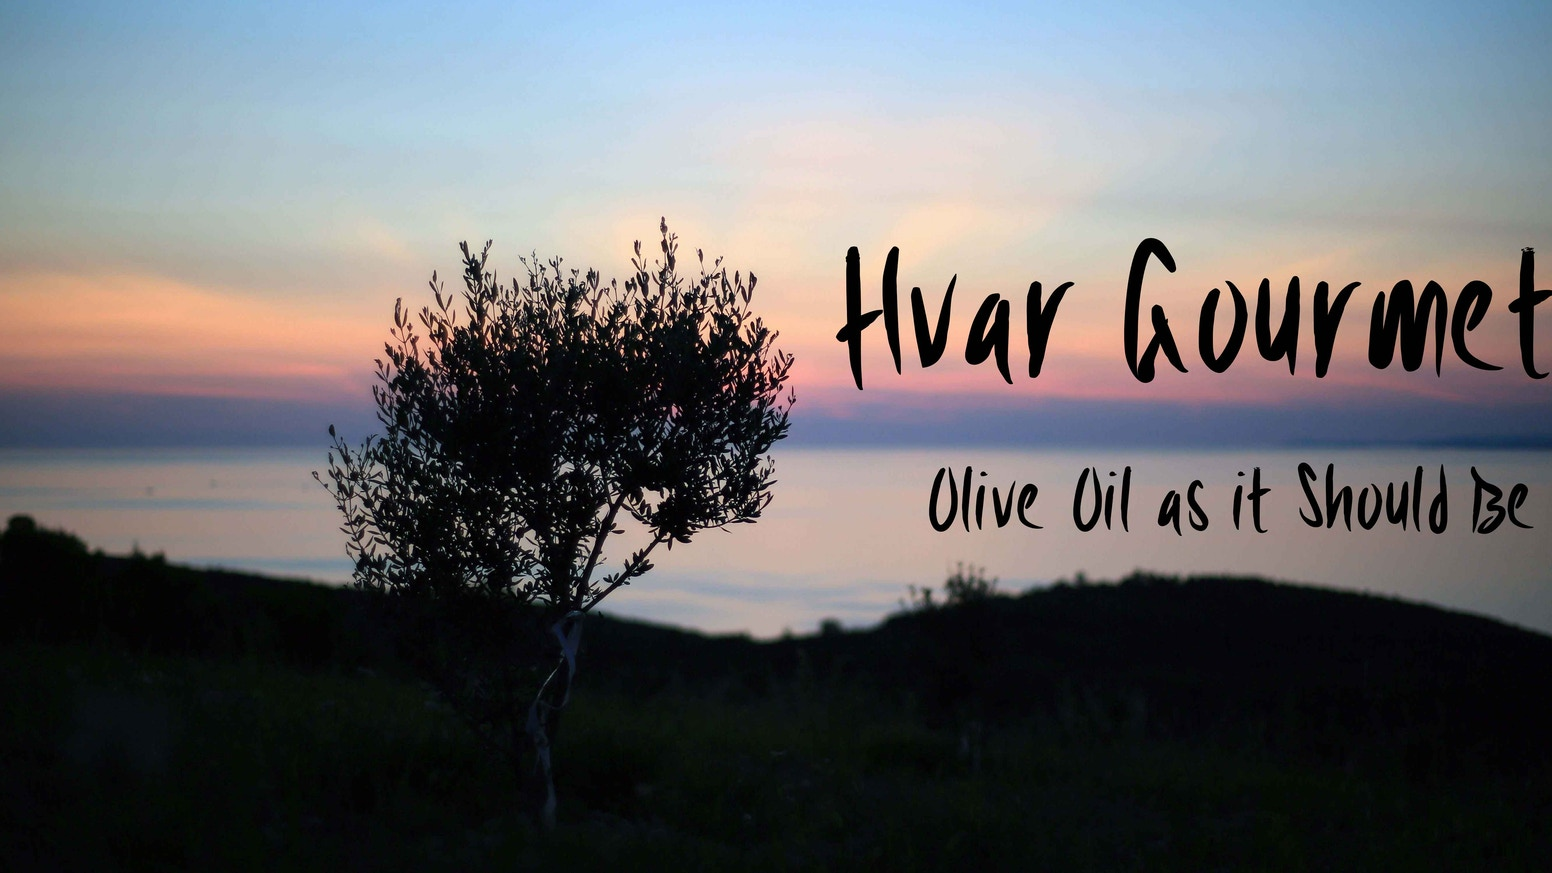 Our Goal: bring you supremely healthy, antioxidant-packed olive oil quickly and directly from our October harvest on Hvar Island.